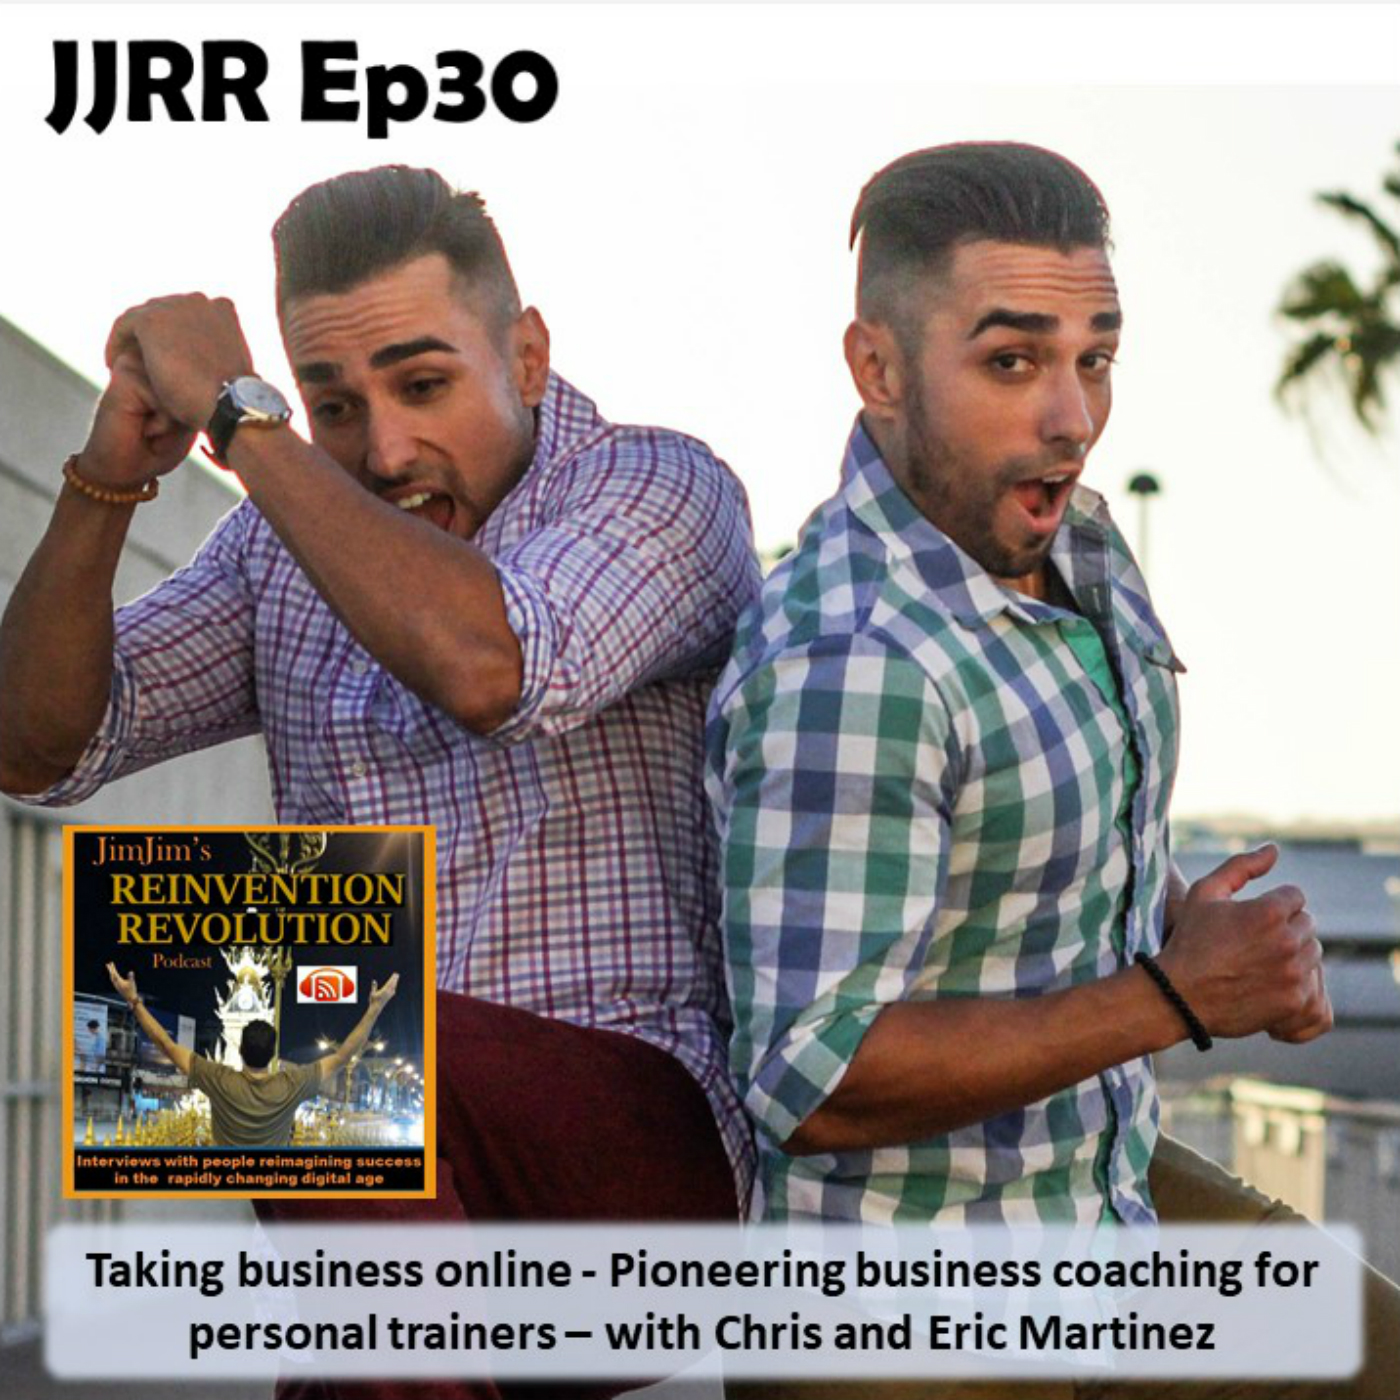 JJRR Ep30 Taking business online – Pioneering business coaching for personal trainers – with Chris and Eric Martinez